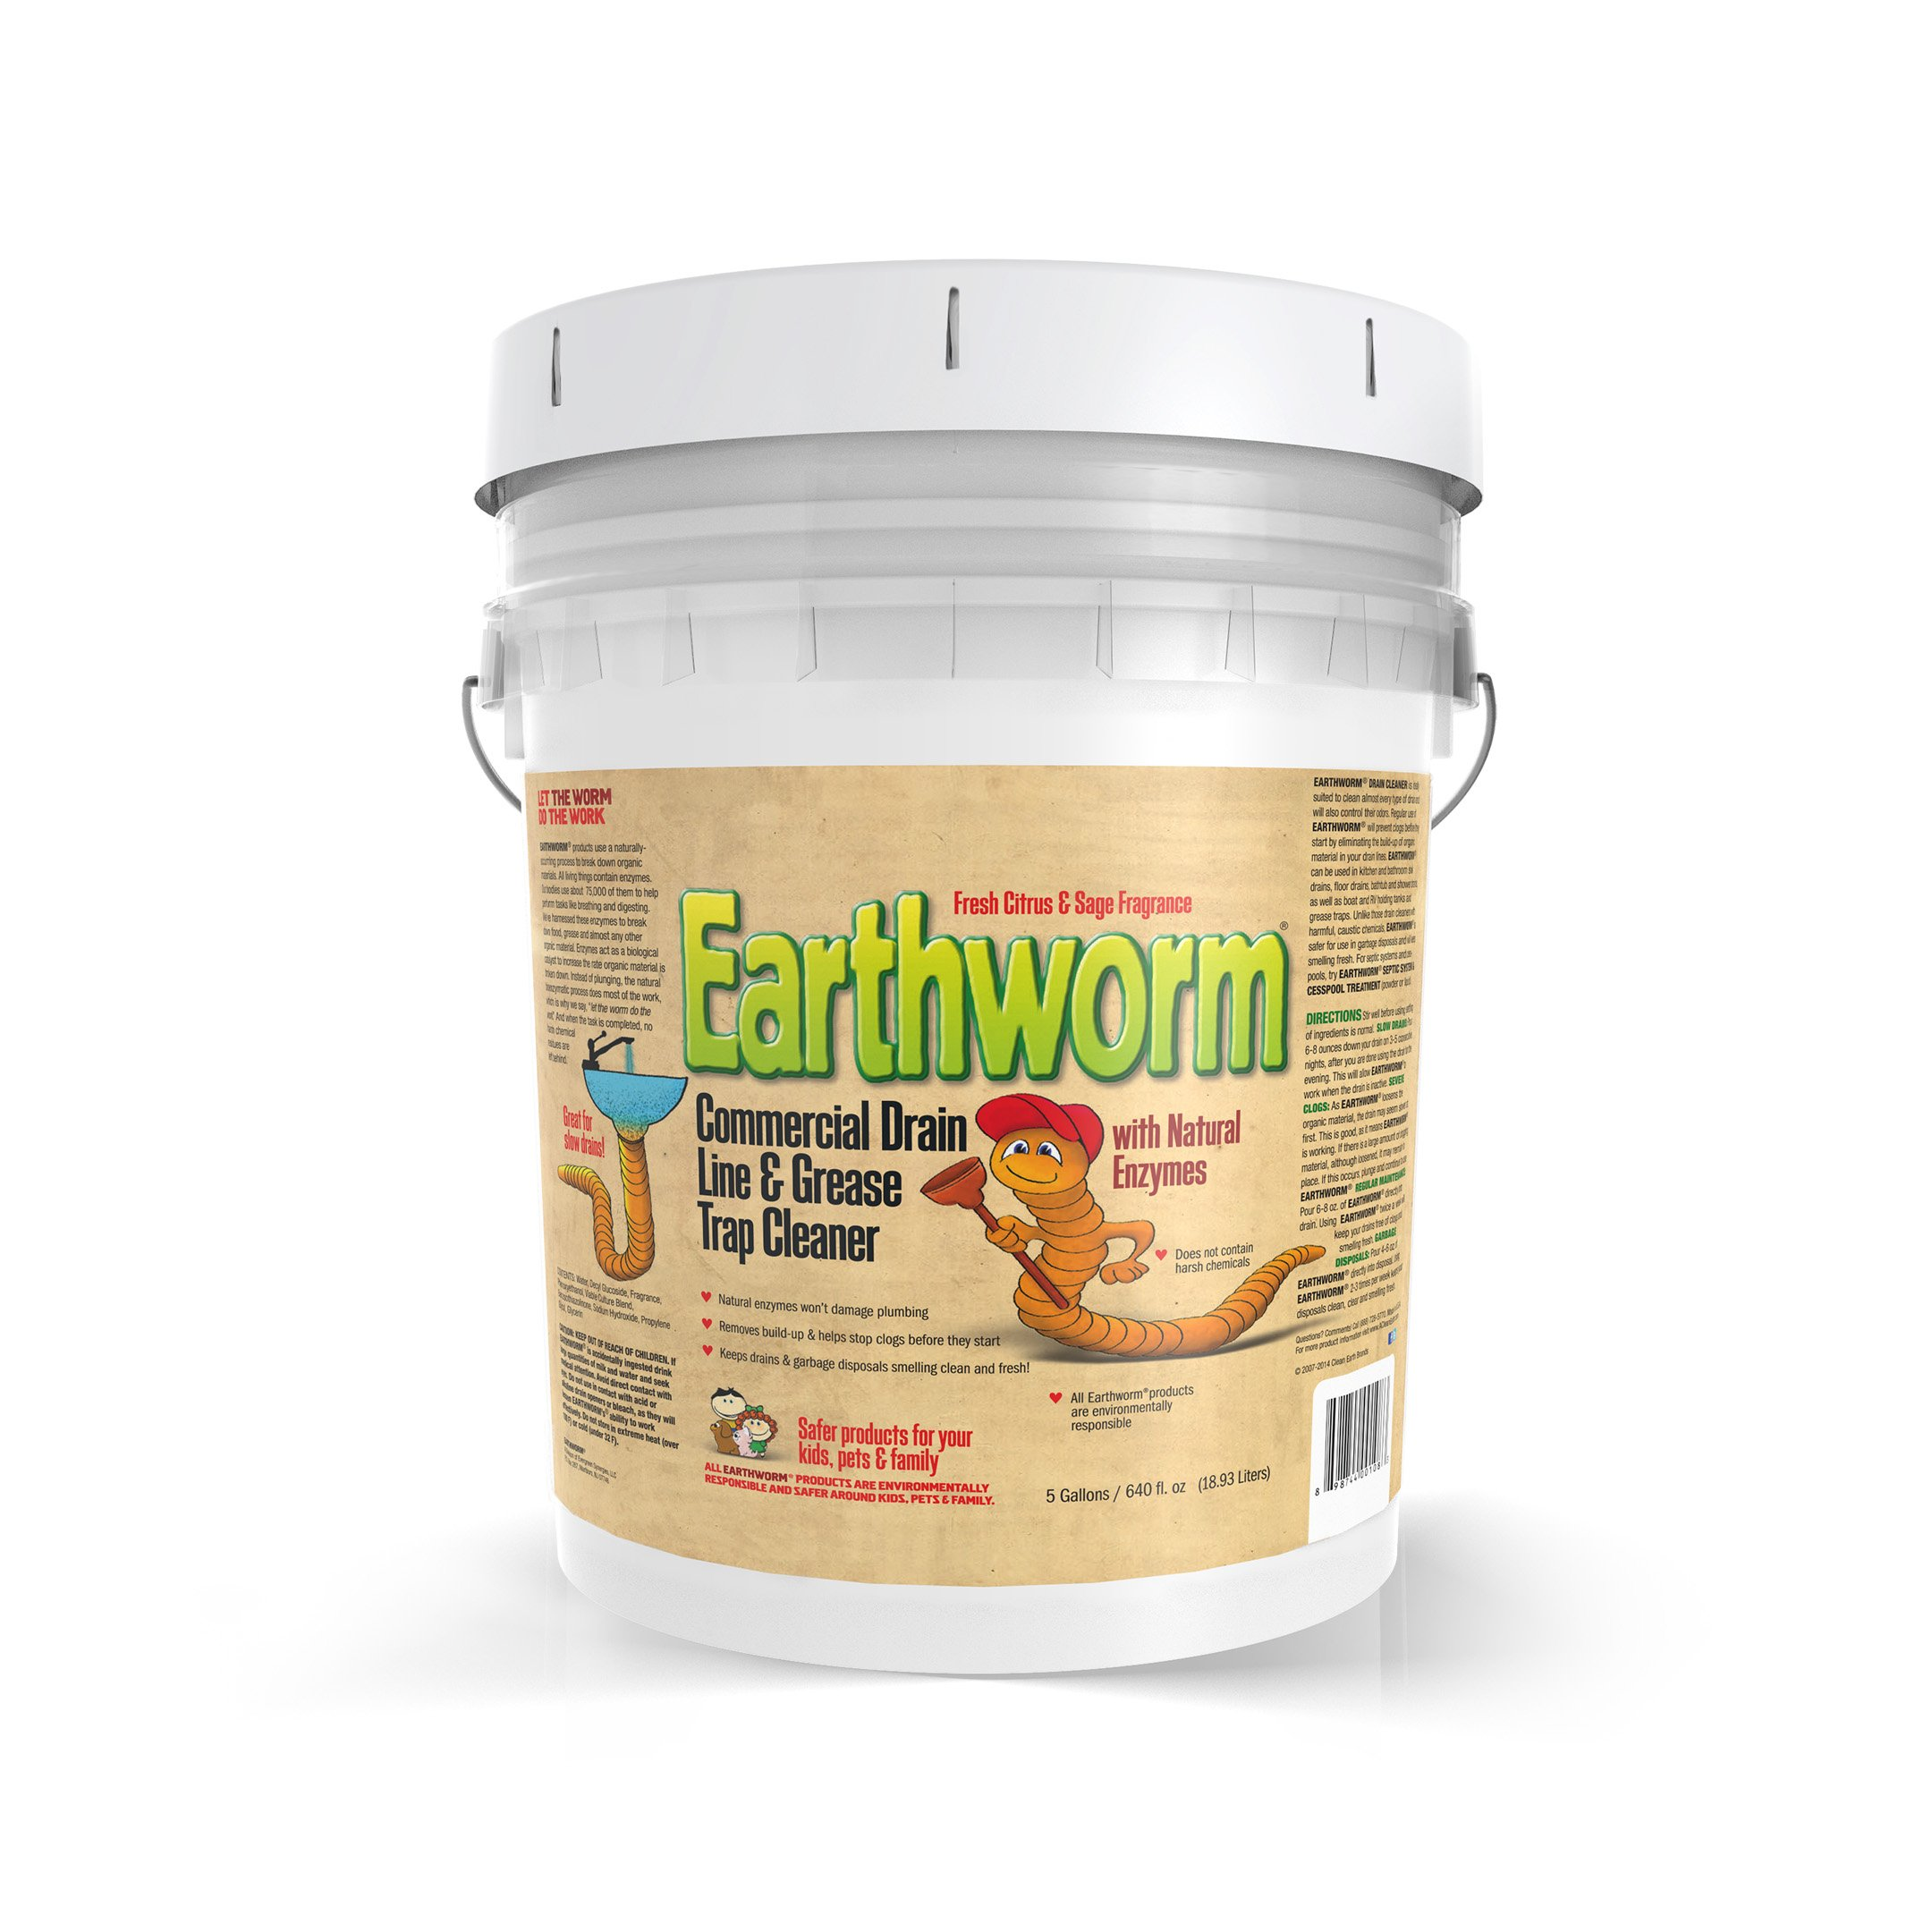 Earthworm® Commercial Drain Line and Grease Trap Cleaner - Clog Remover - Drain Opener / Deodorizer - Natural Enzymes, Environmentally Responsible - 5 Gallon Size 5-Gallons